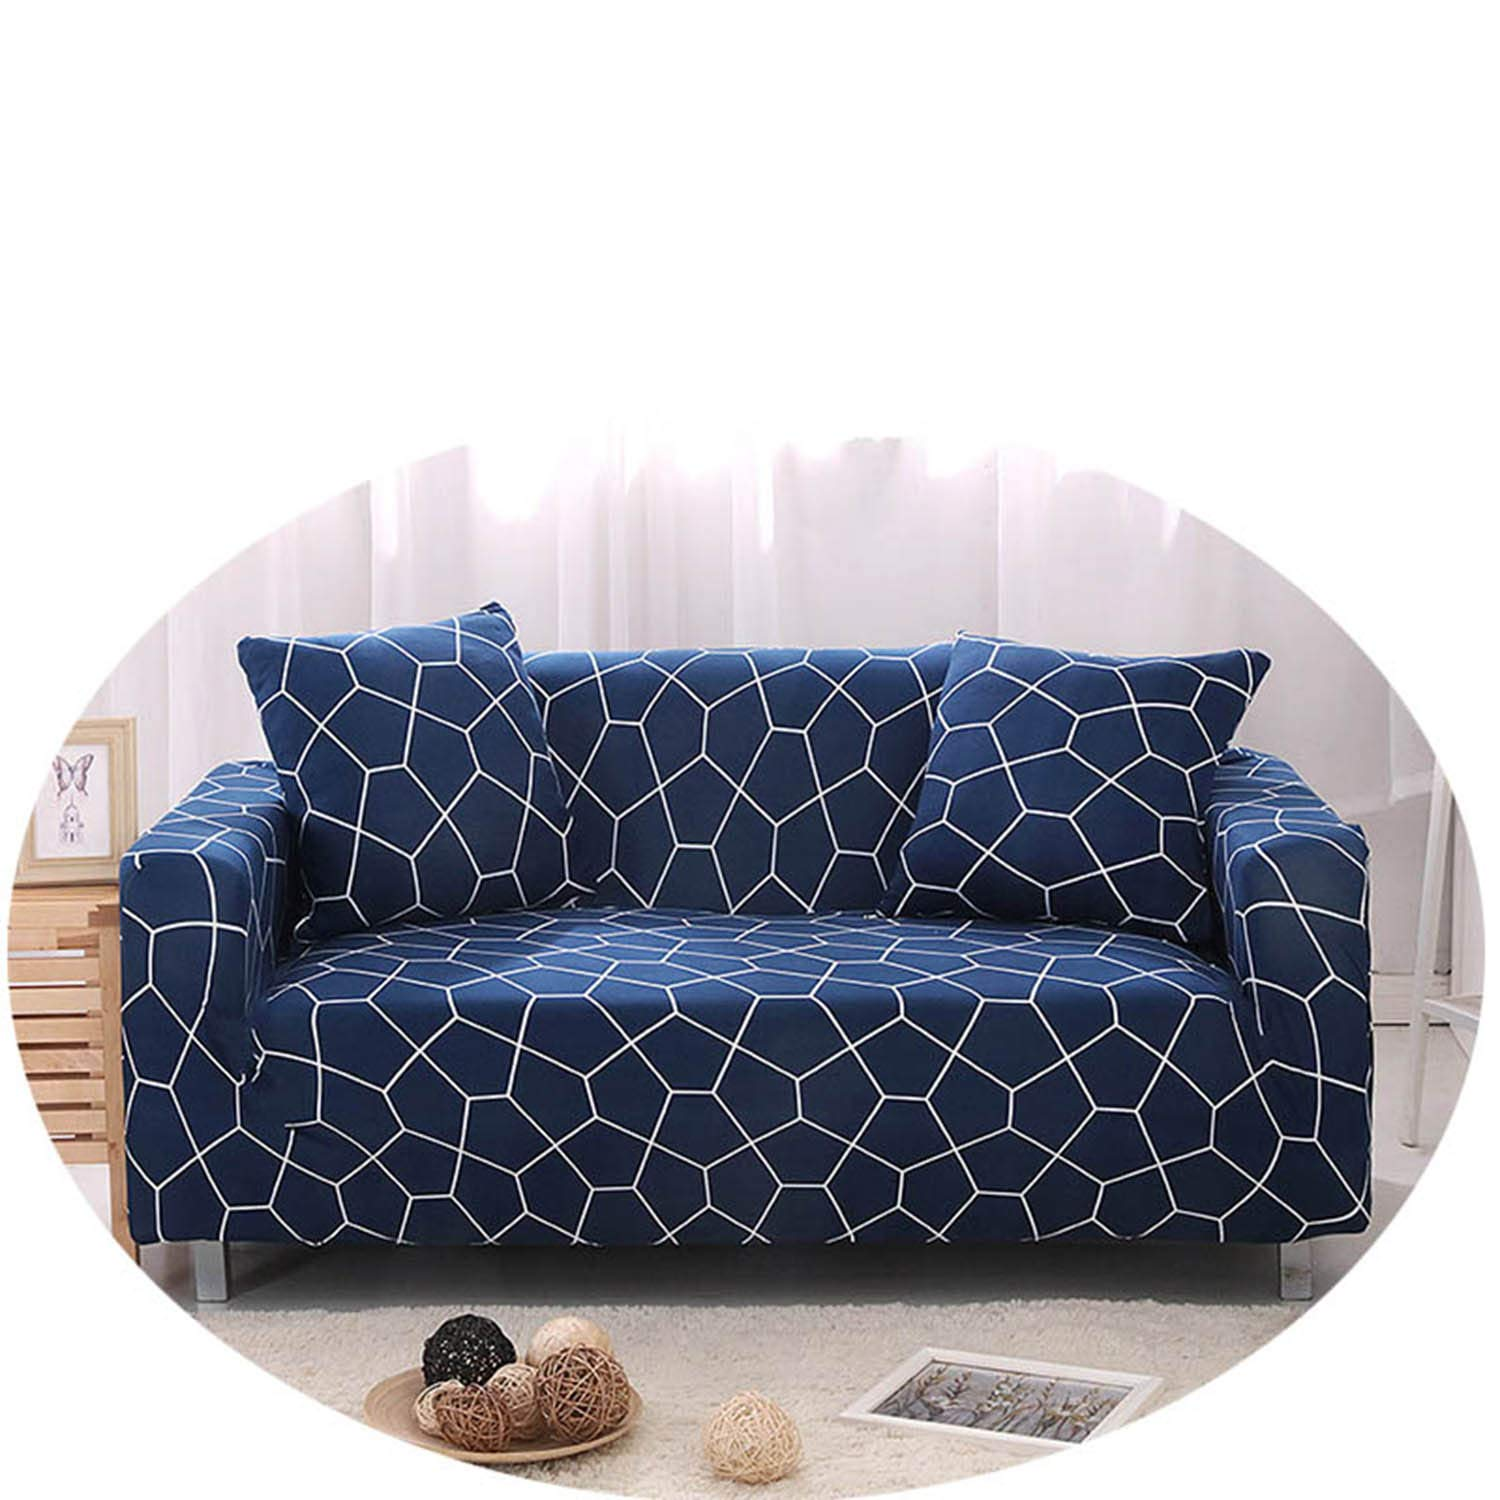 Amazon.com: Elastic Sofa Cover Washable Couch Cover Sofa ...